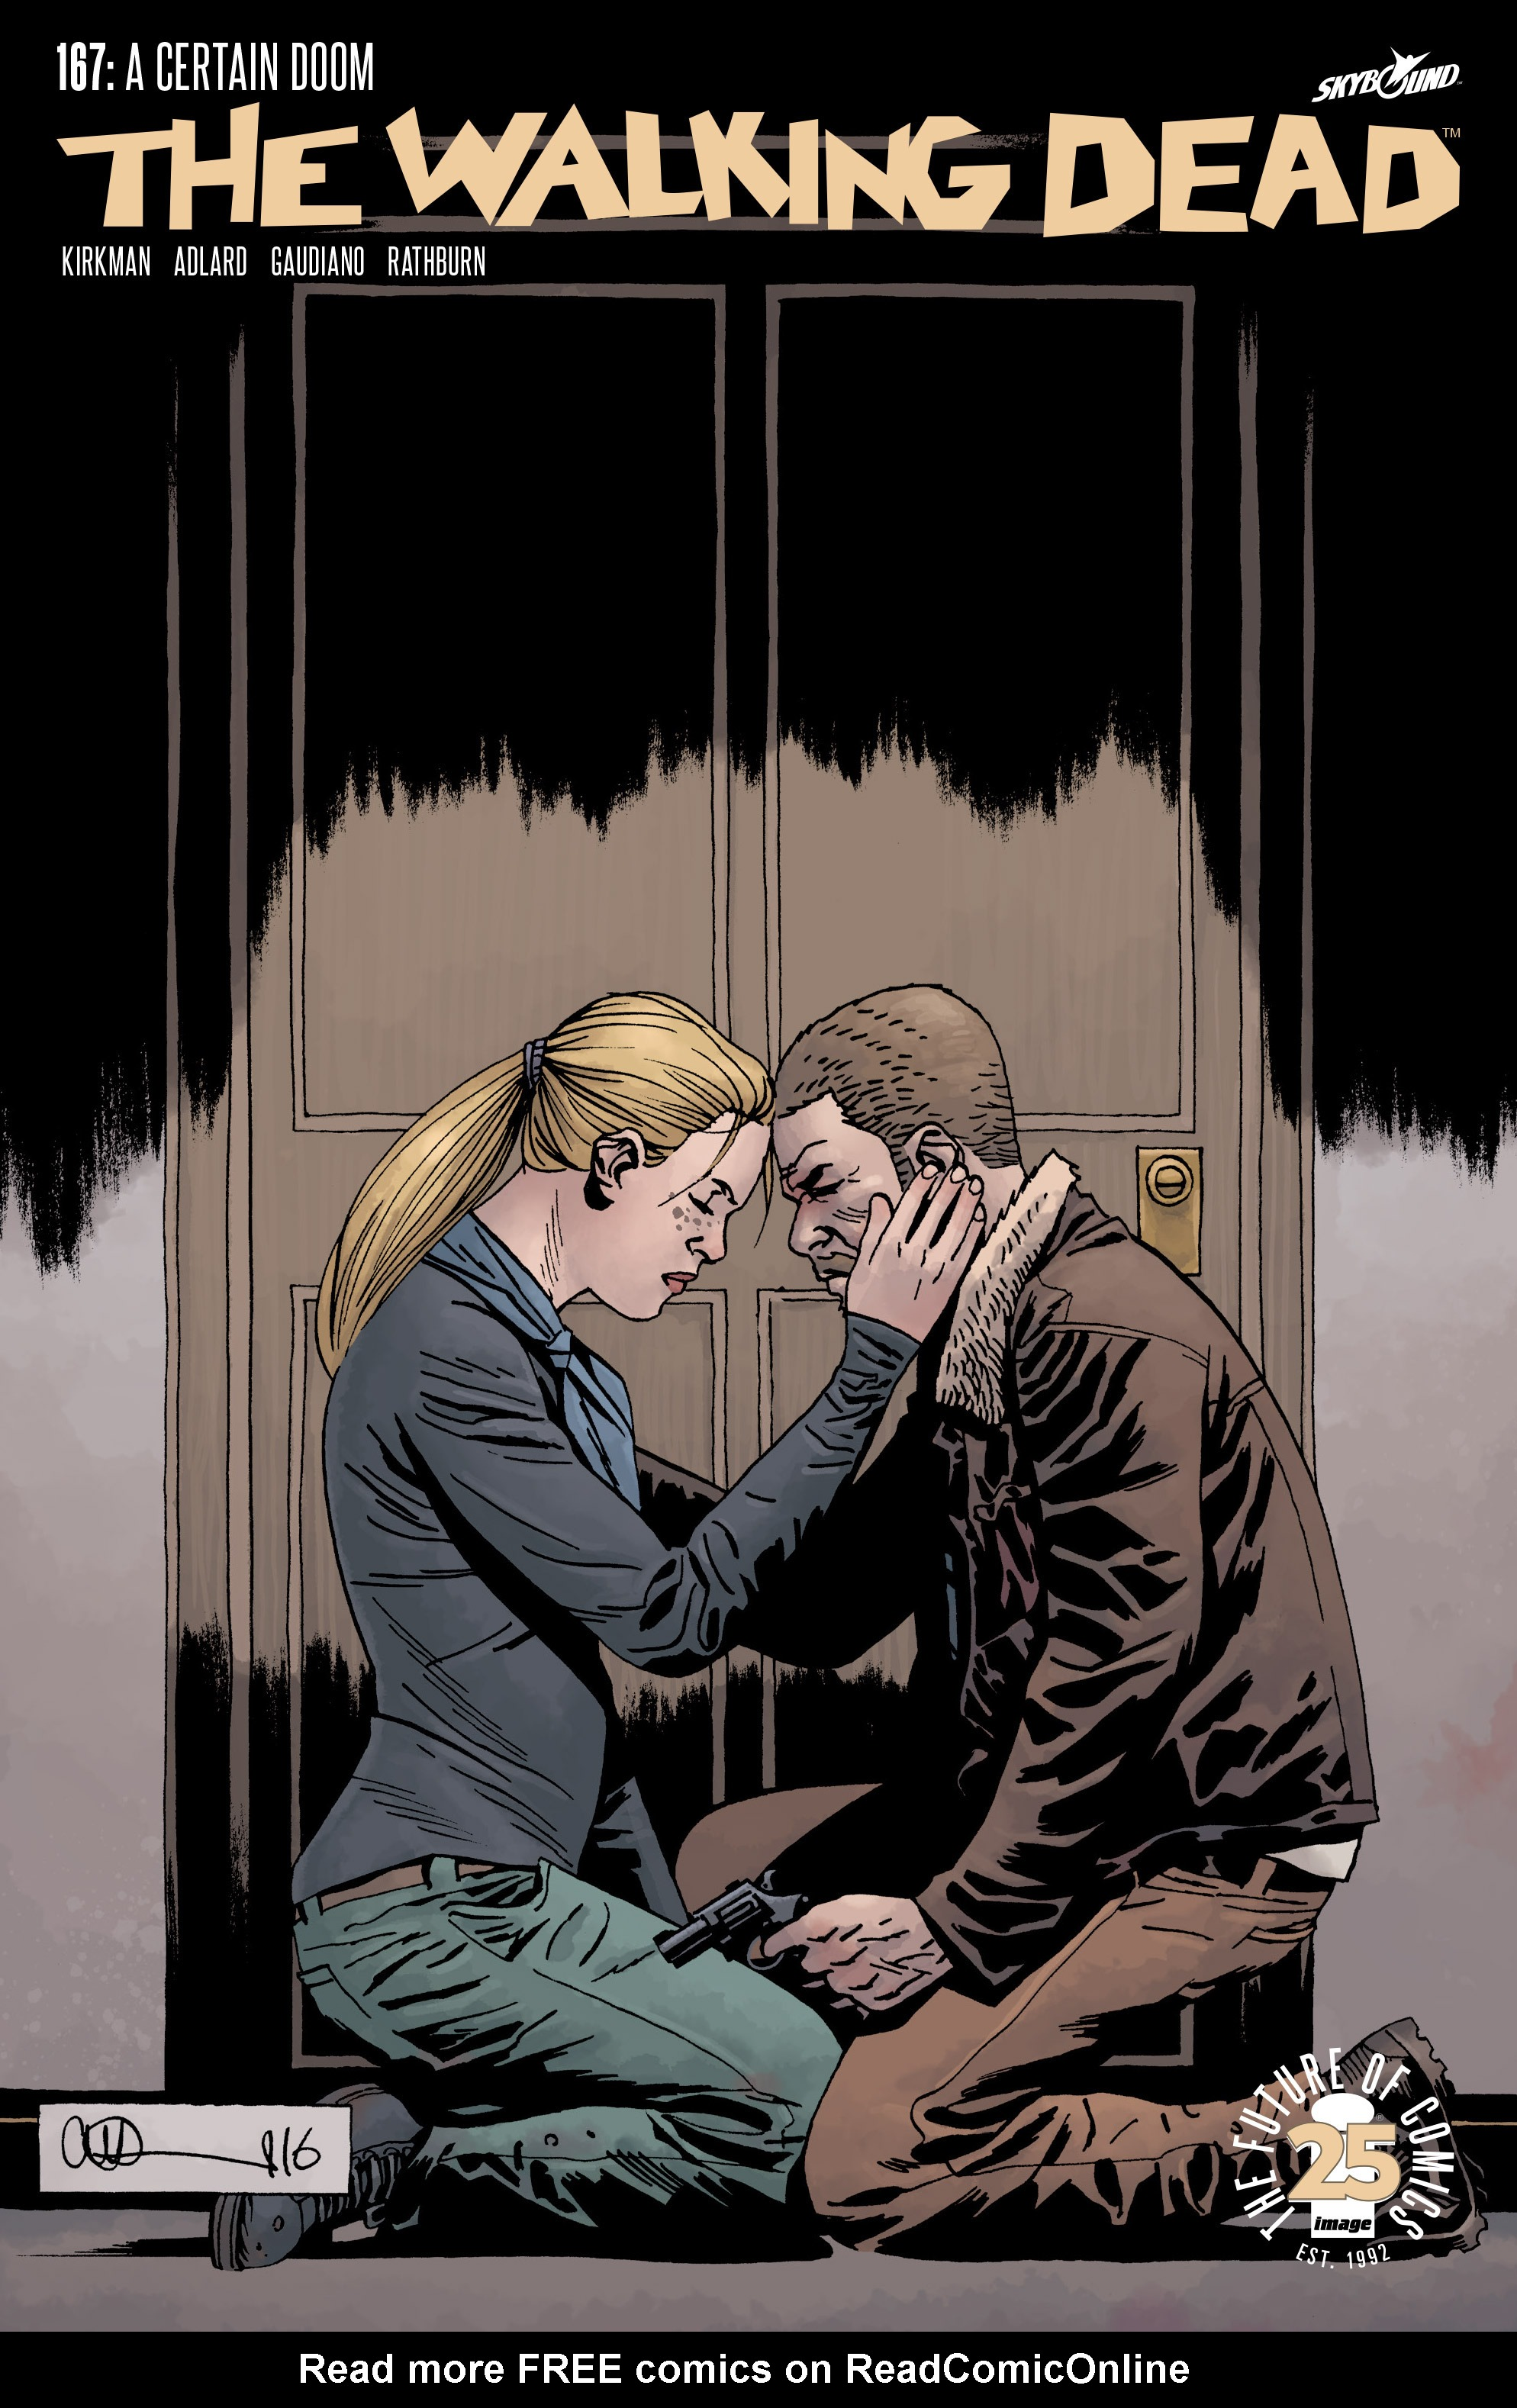 The Walking Dead 167 Page 1